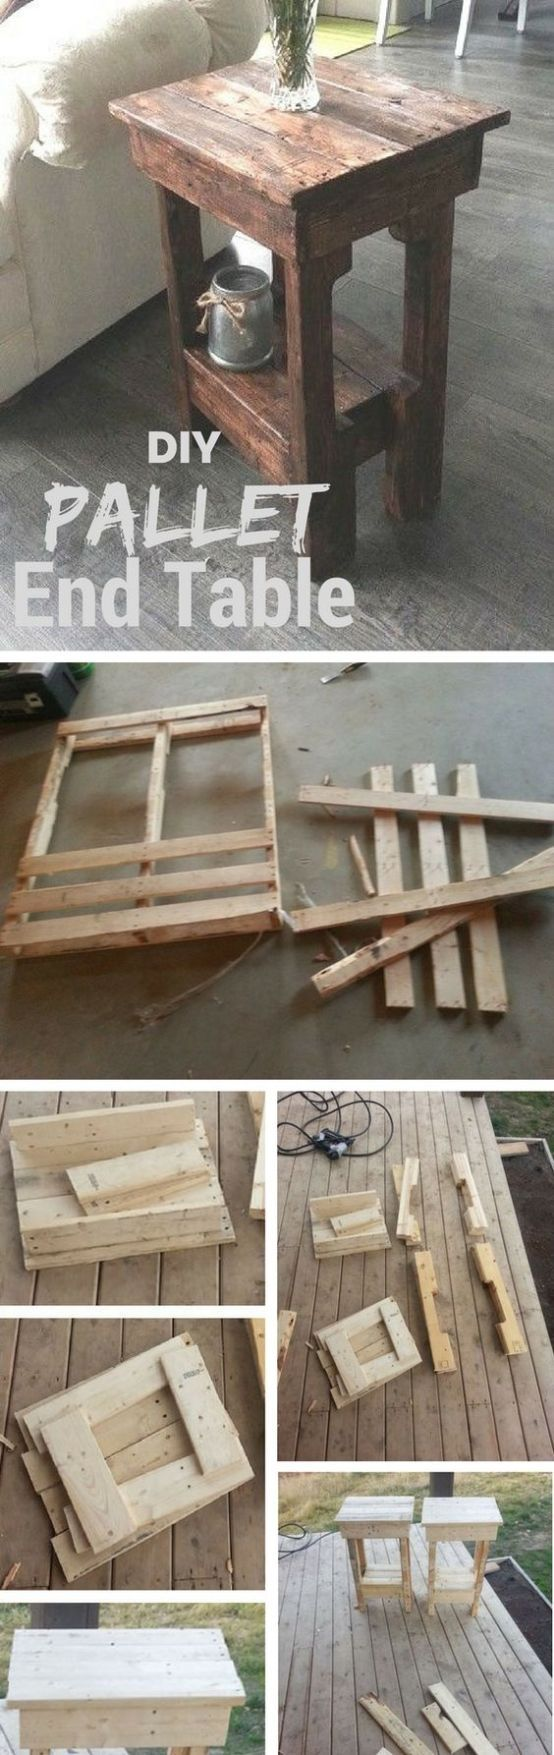 25 best ideas about pallet furniture instructions on pinterest pallet projects instructions - Diy projects with wooden palletsideas easy to carry out ...